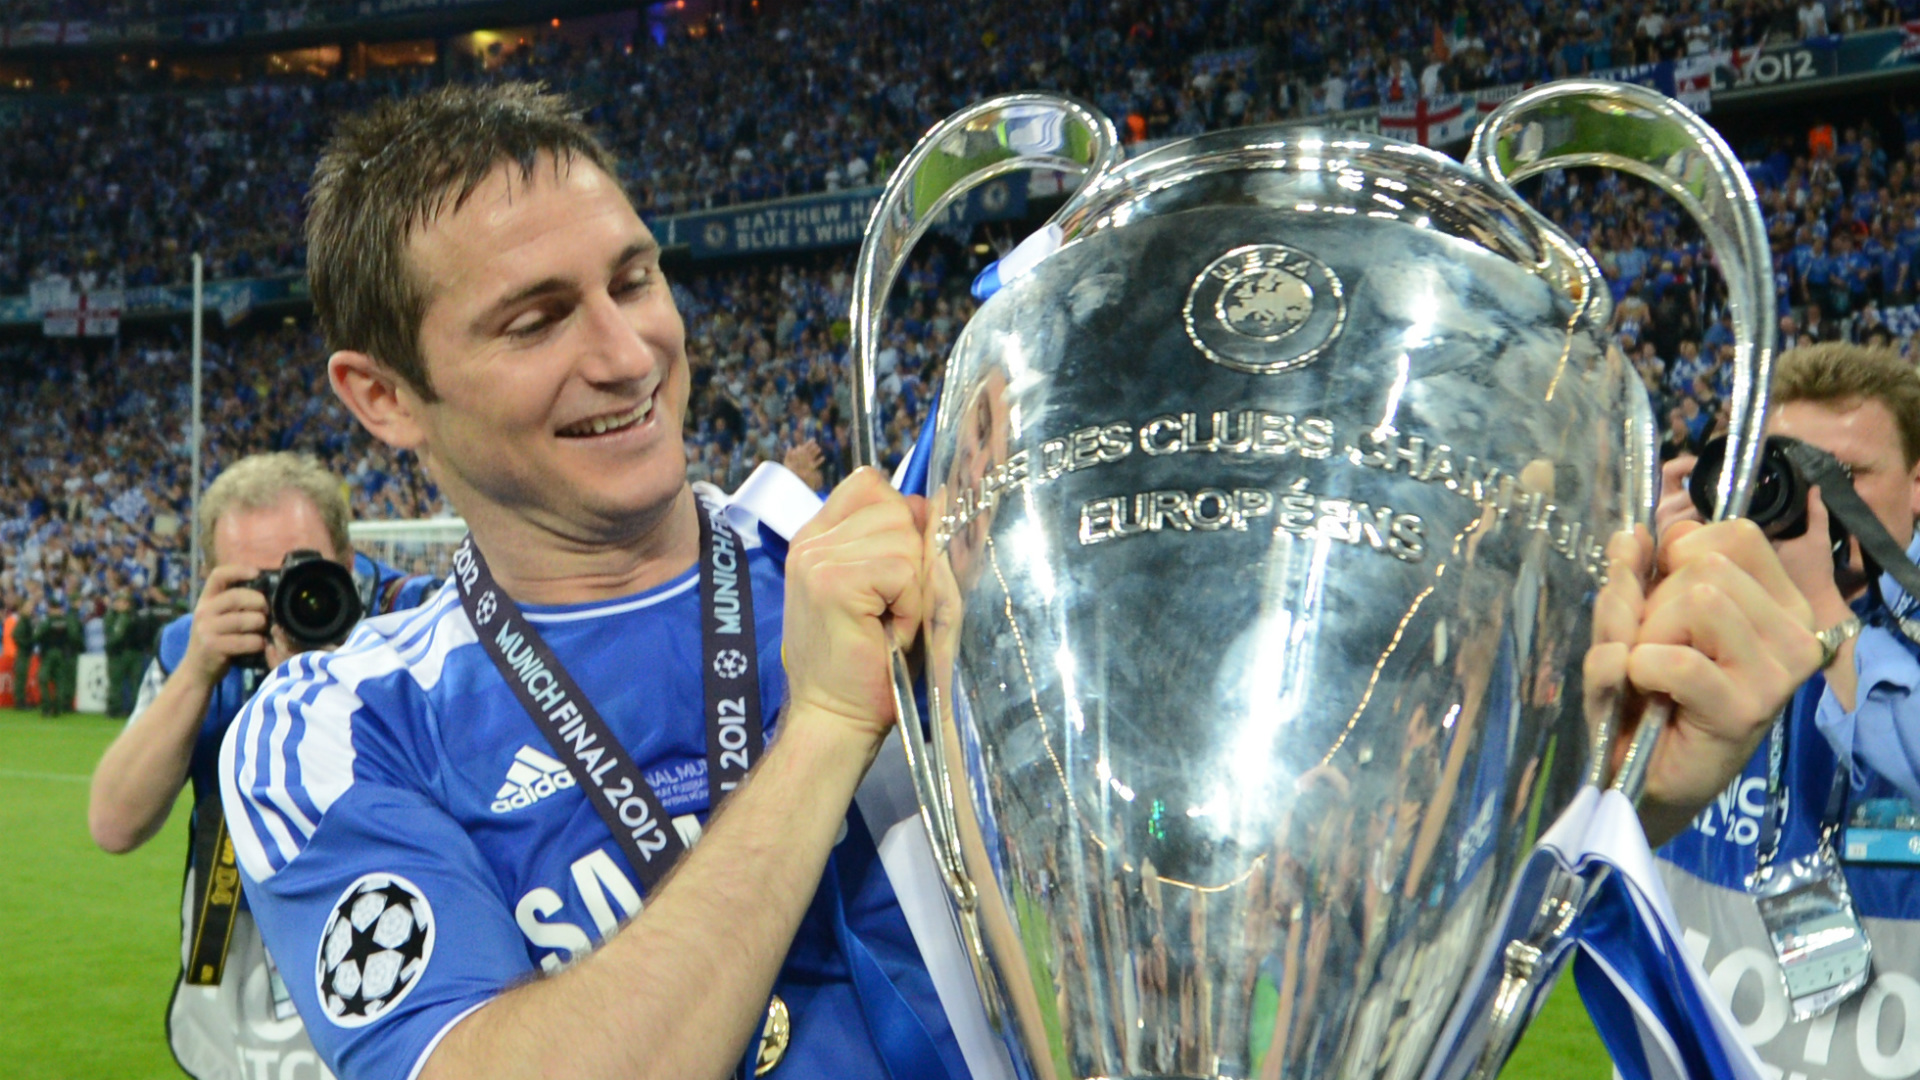 Lampard played a key role in Chelsea's miracle in Munich in 2012 - so can he upset Bayern again?